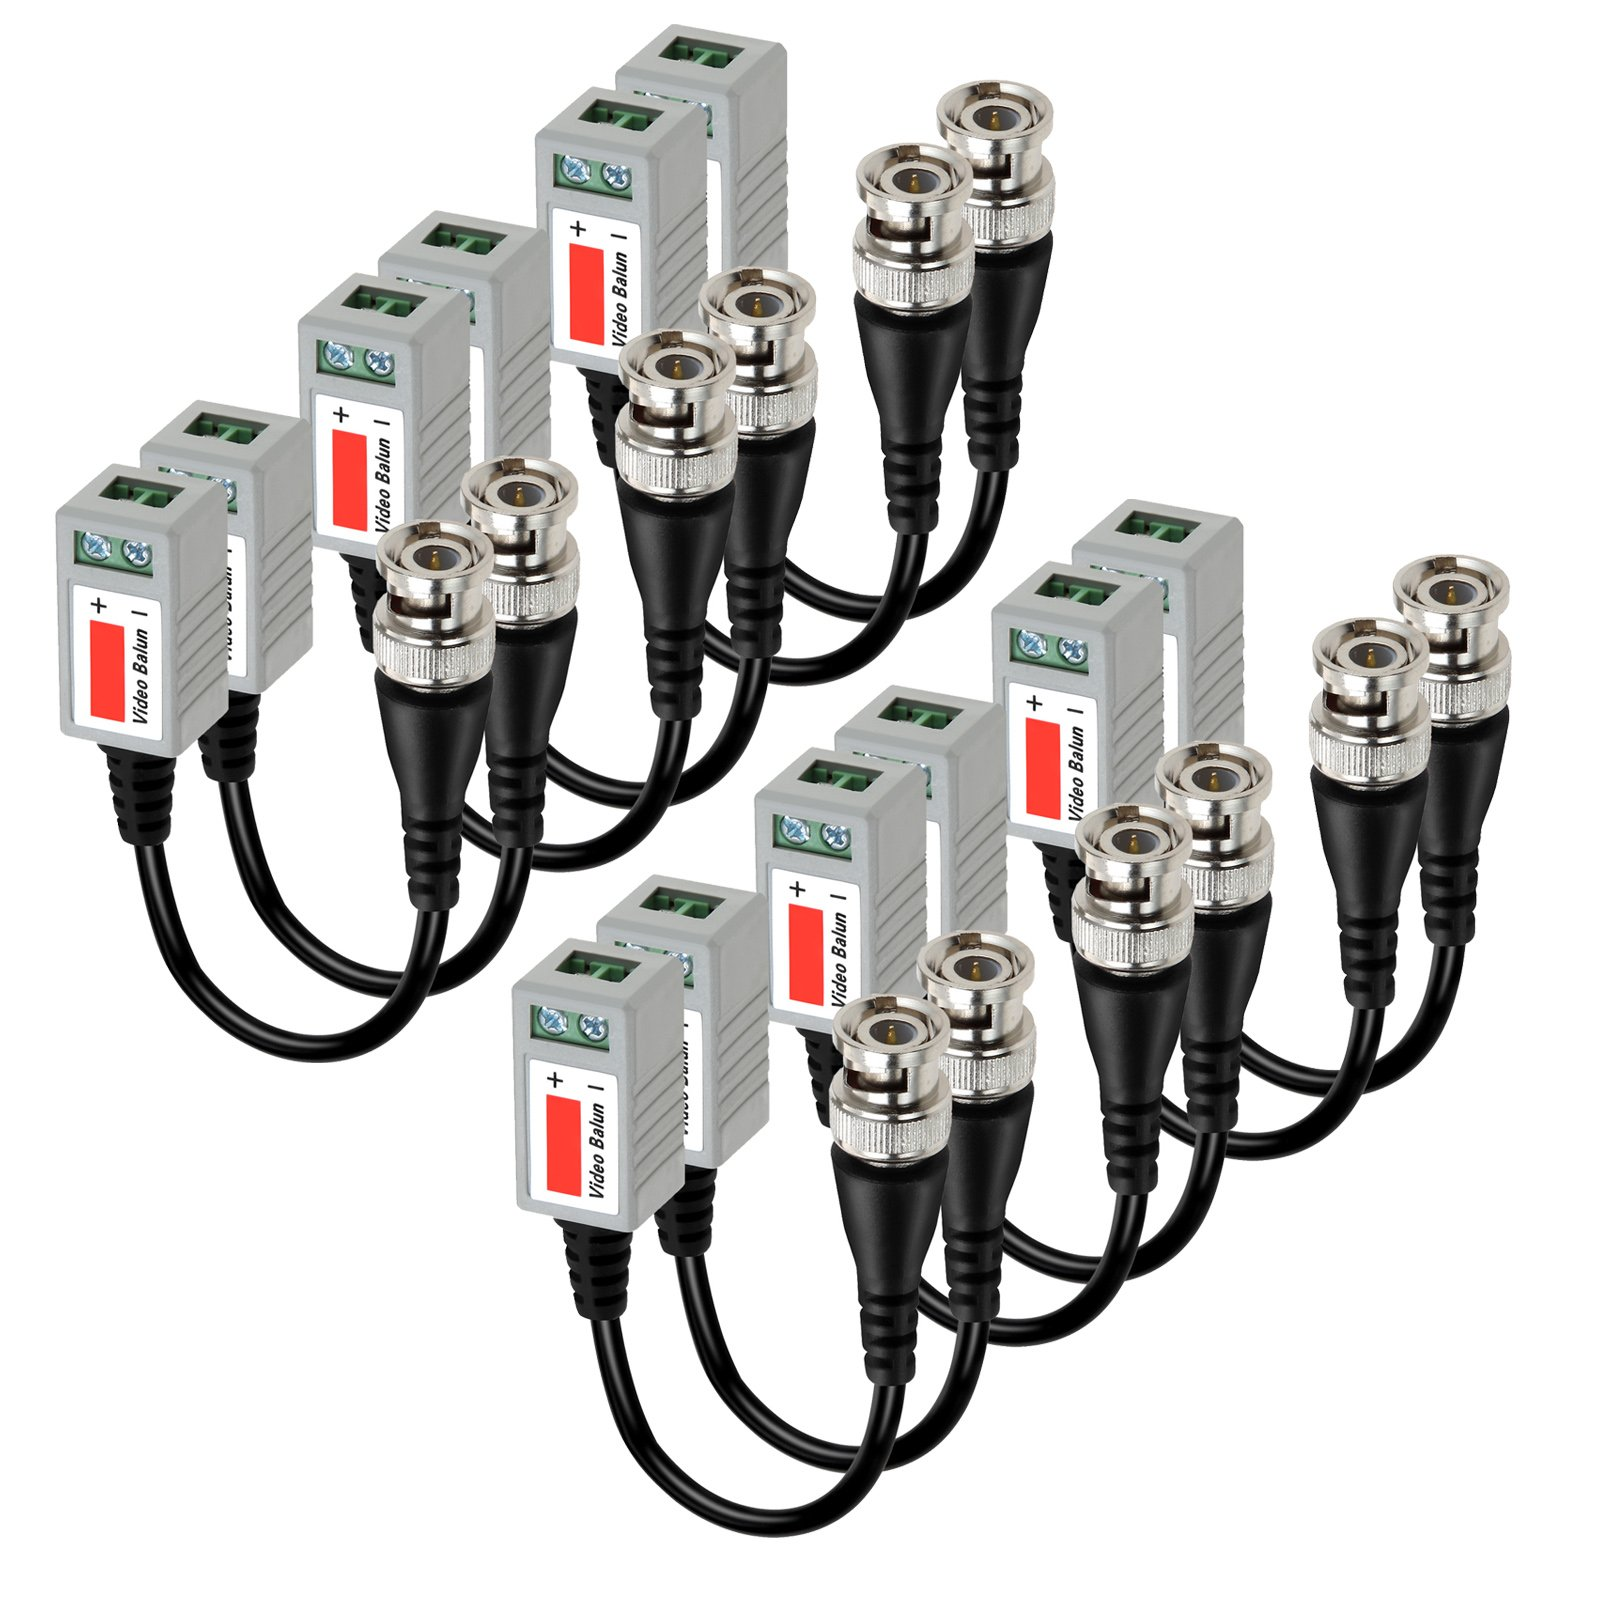 VIMVIP 6 PAIRS (12 Pcs) Mini CCTV BNC Video Balun Transceiver Cable